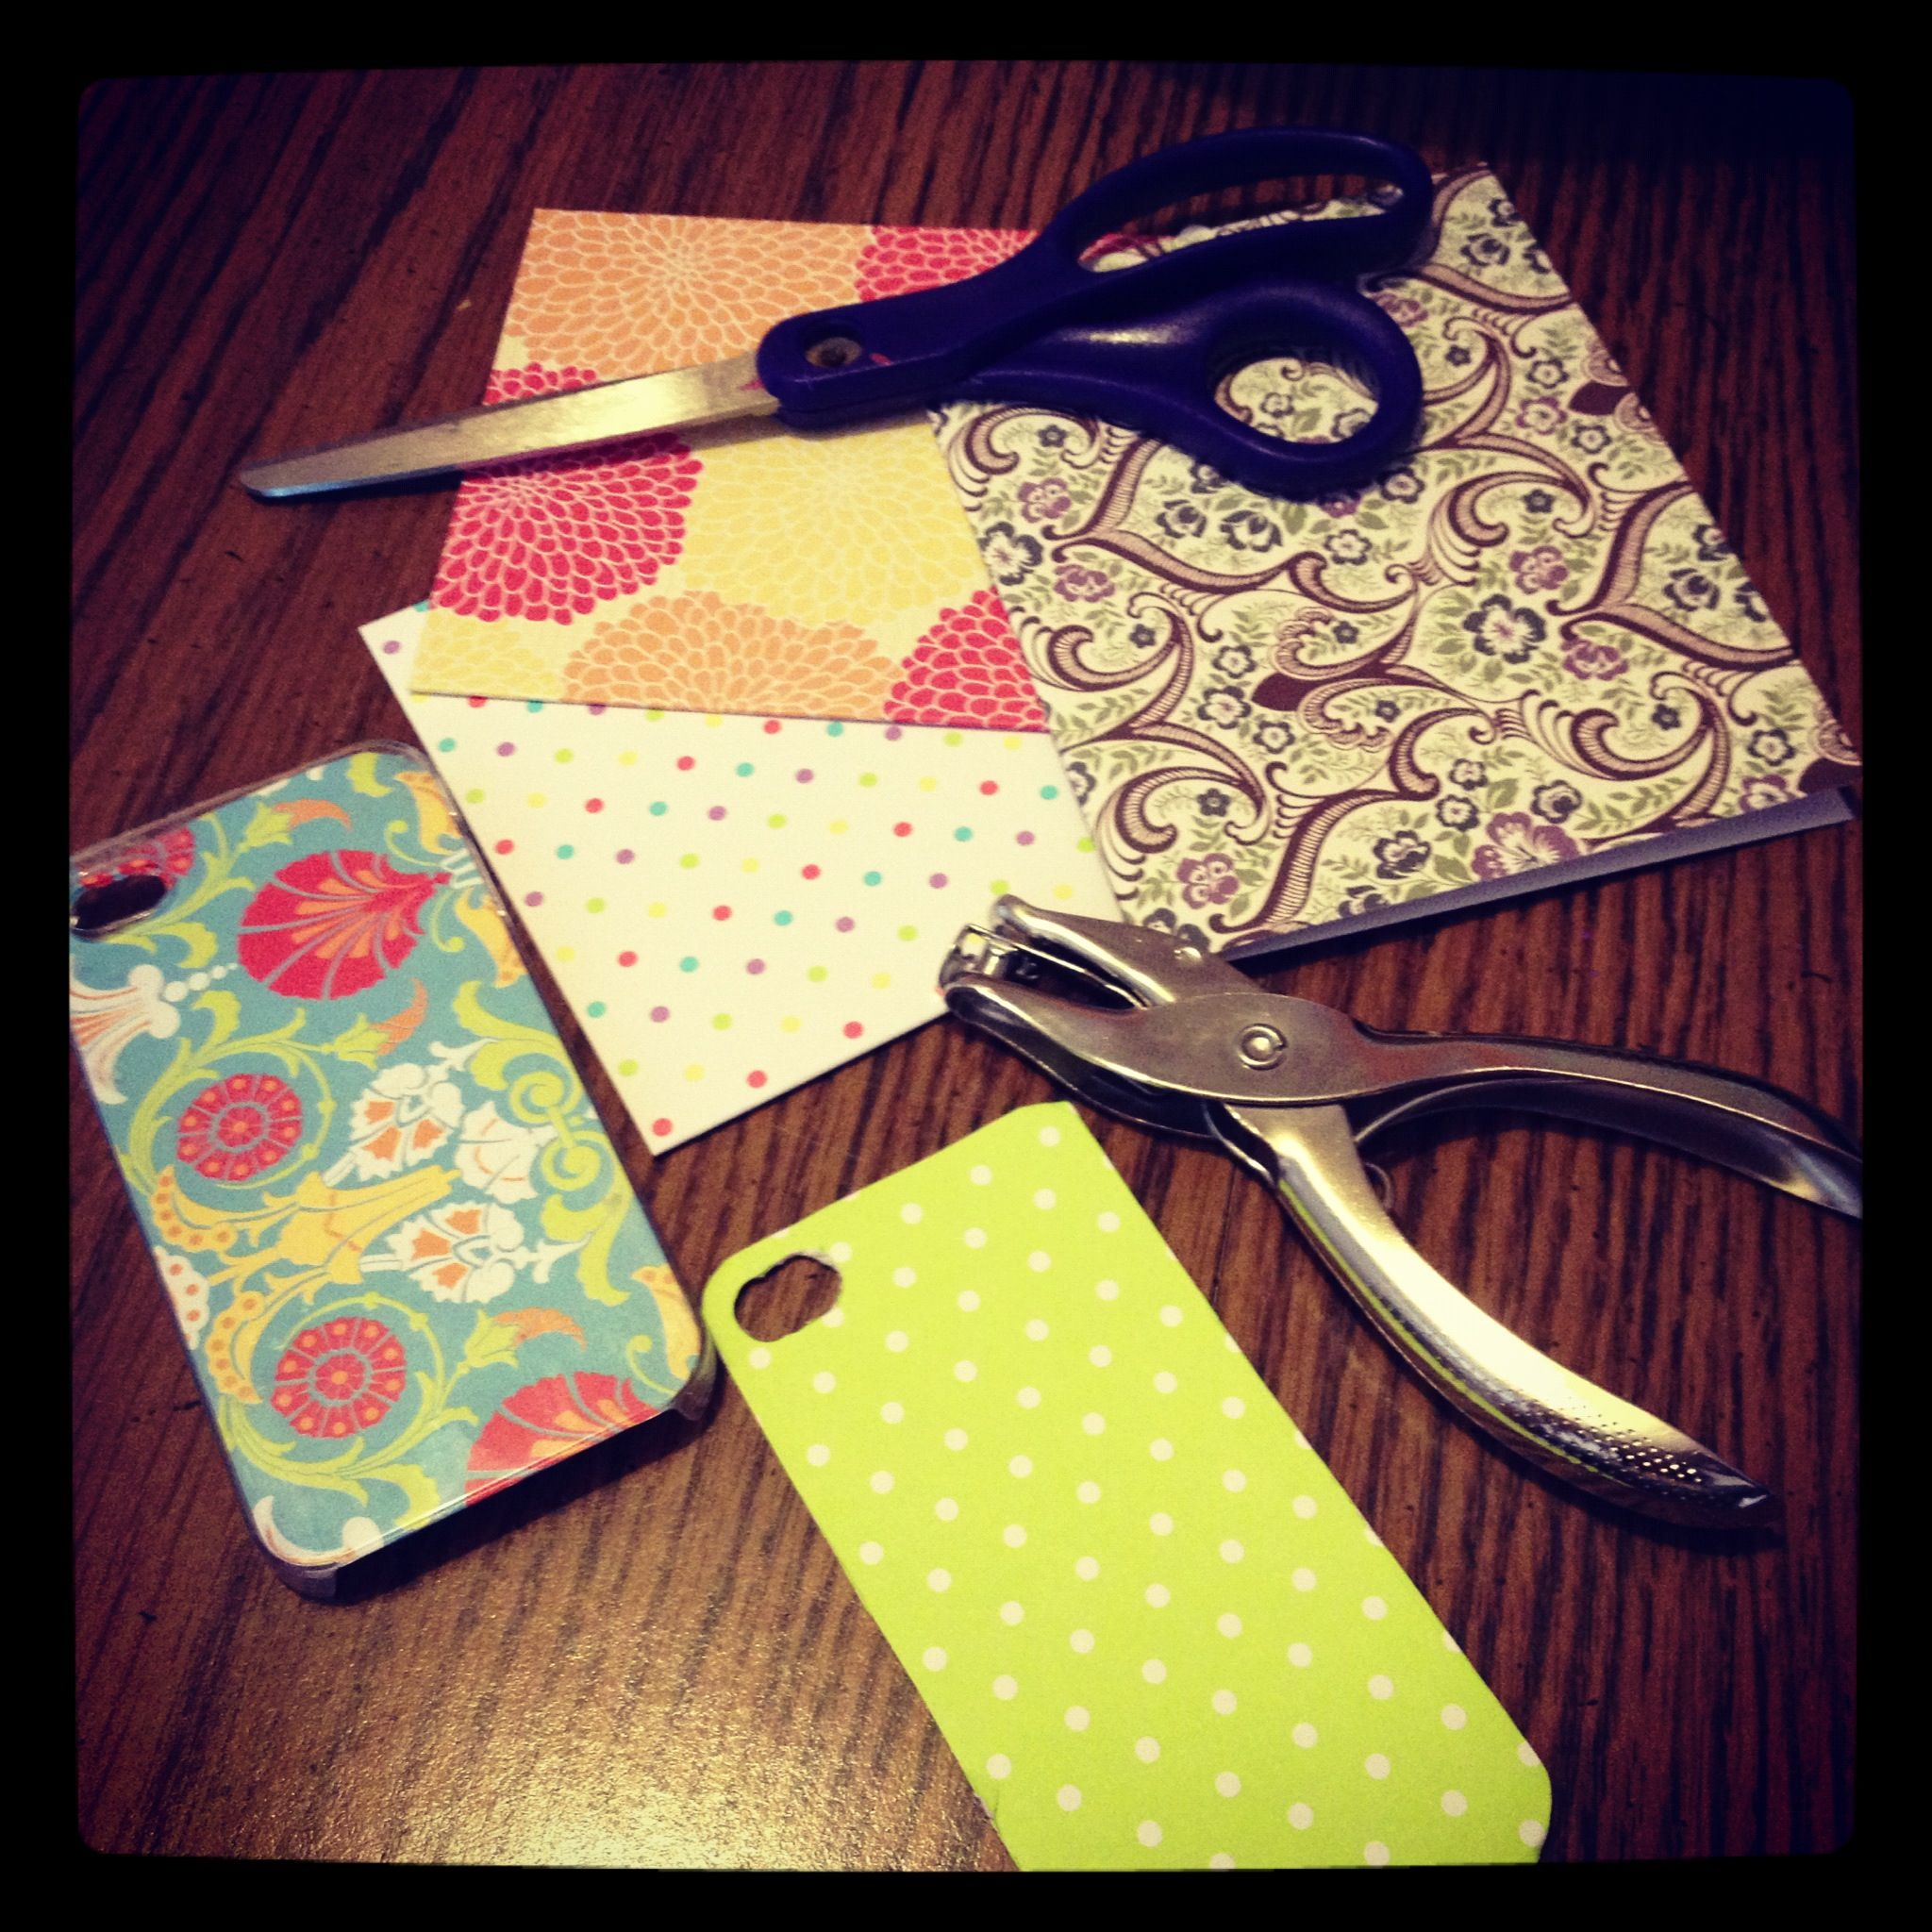 Diy iphone cases for under 5 woohoo ive been busy making